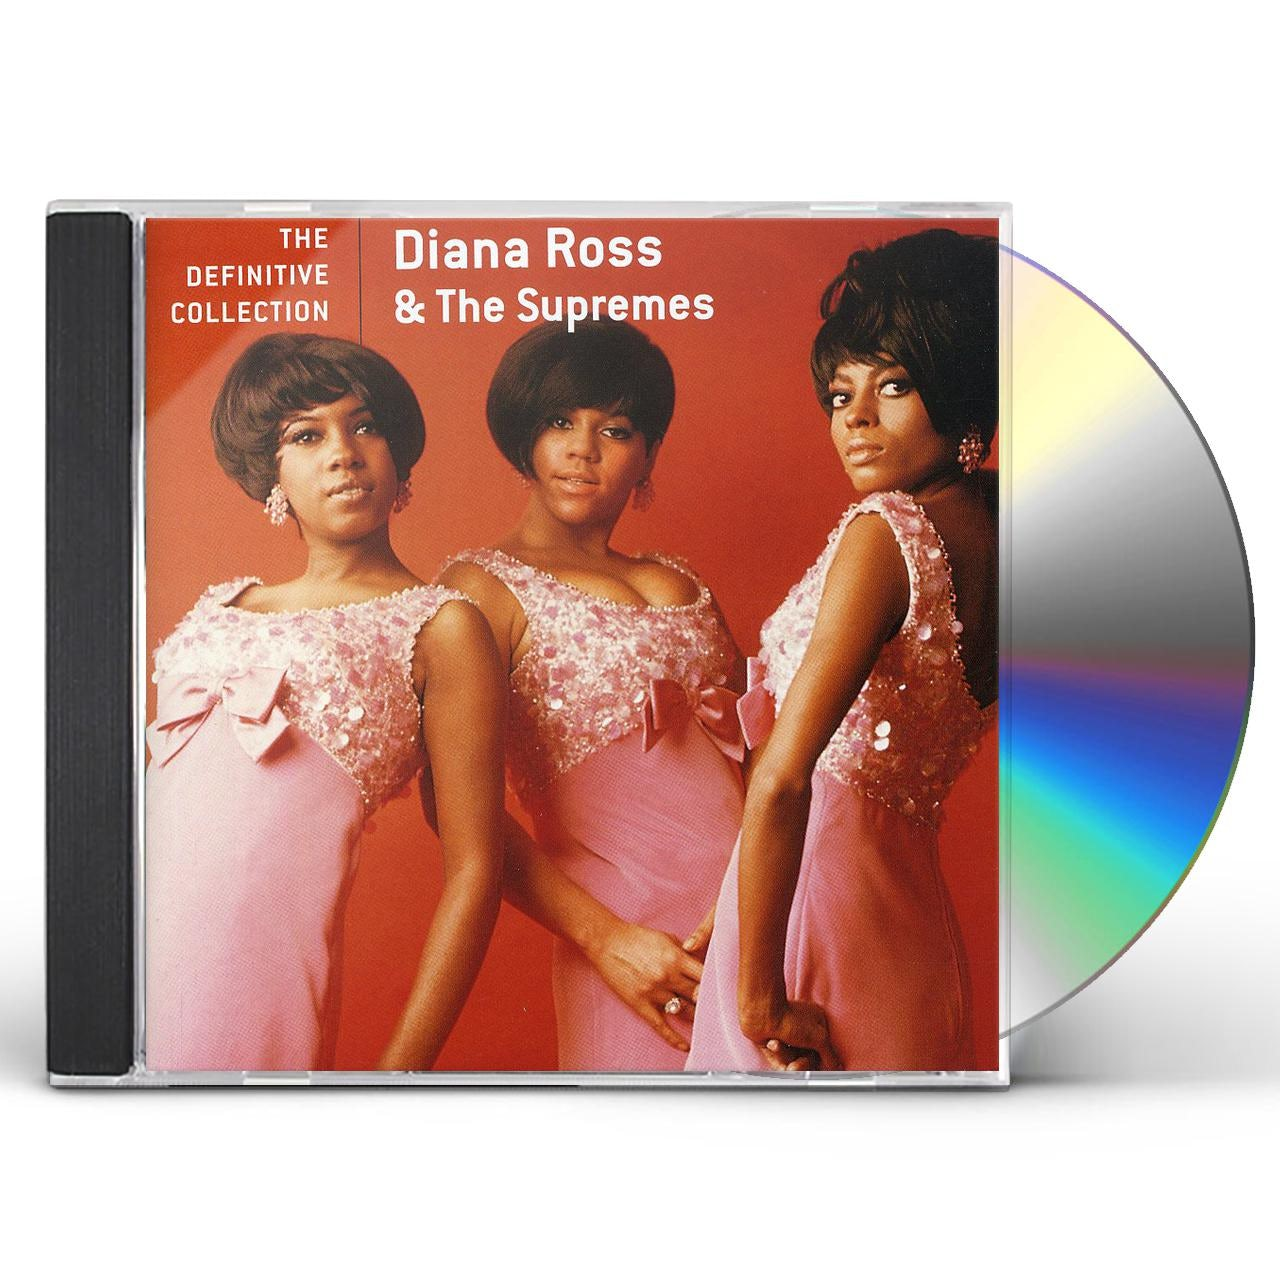 Diana Ross - CD & The Supremes - The Definitive Collection